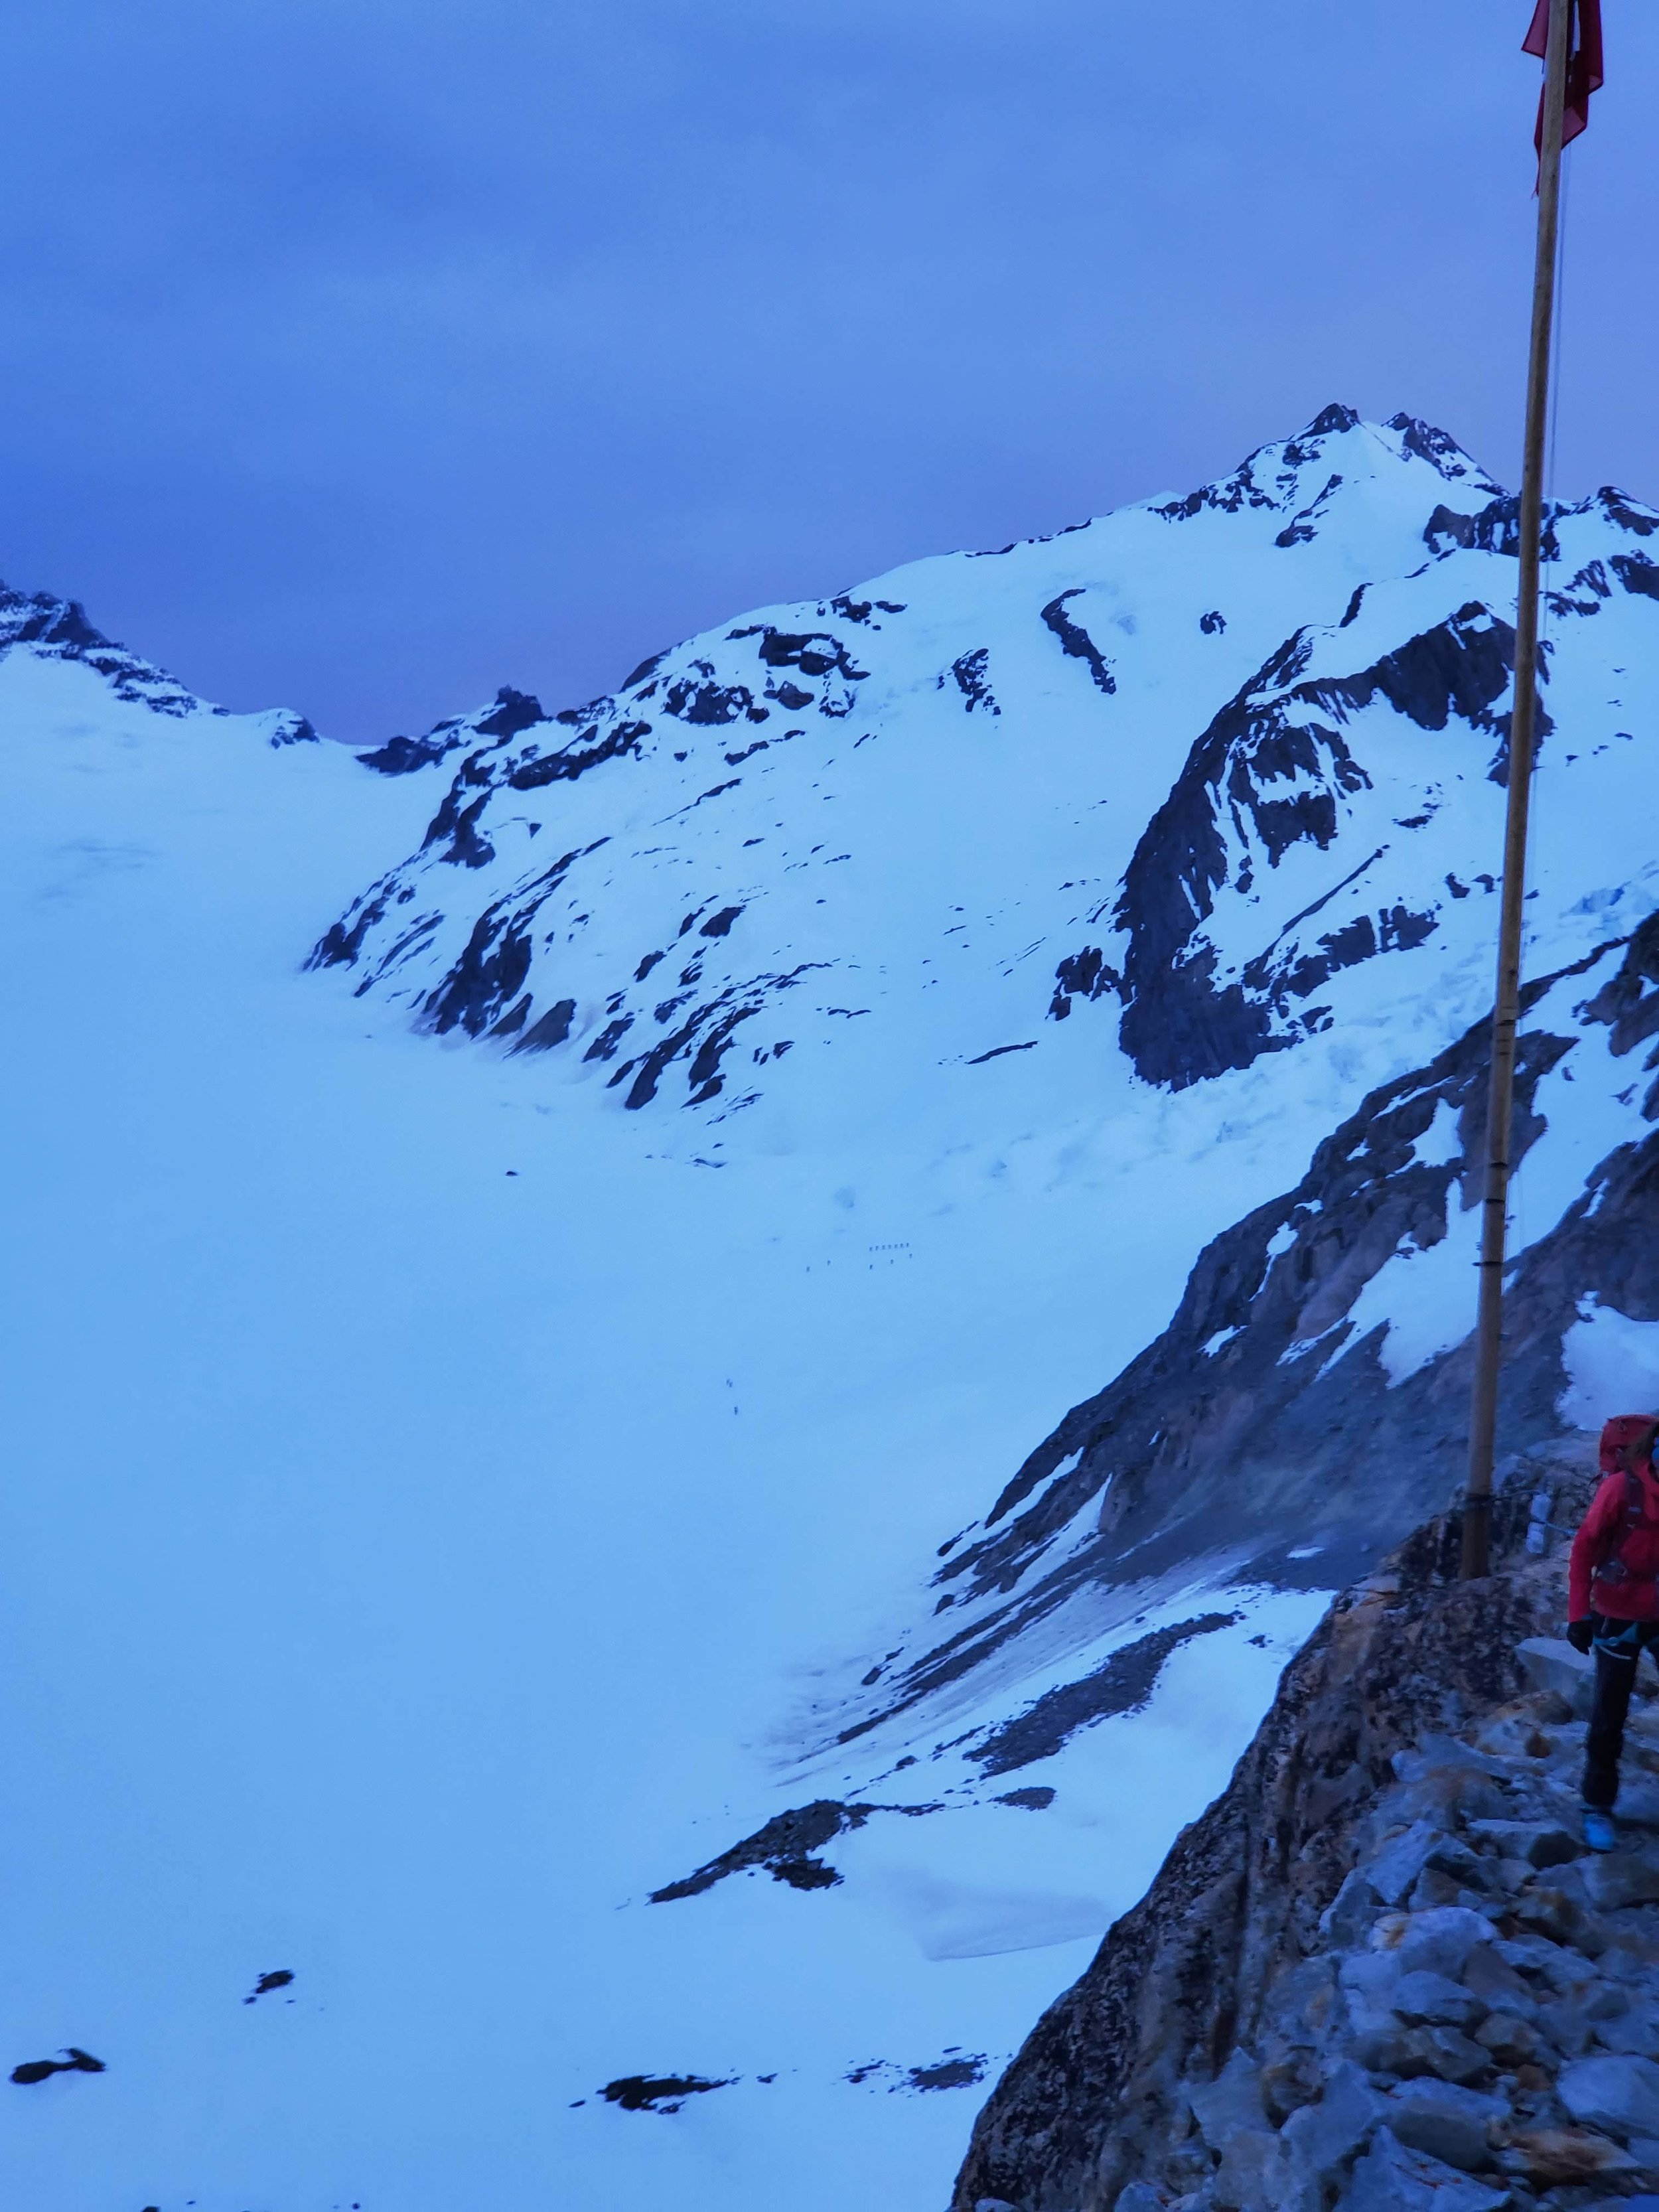 Morning from the hut. You can see the dots of groups who got much earlier starts than us heading up the icefall.